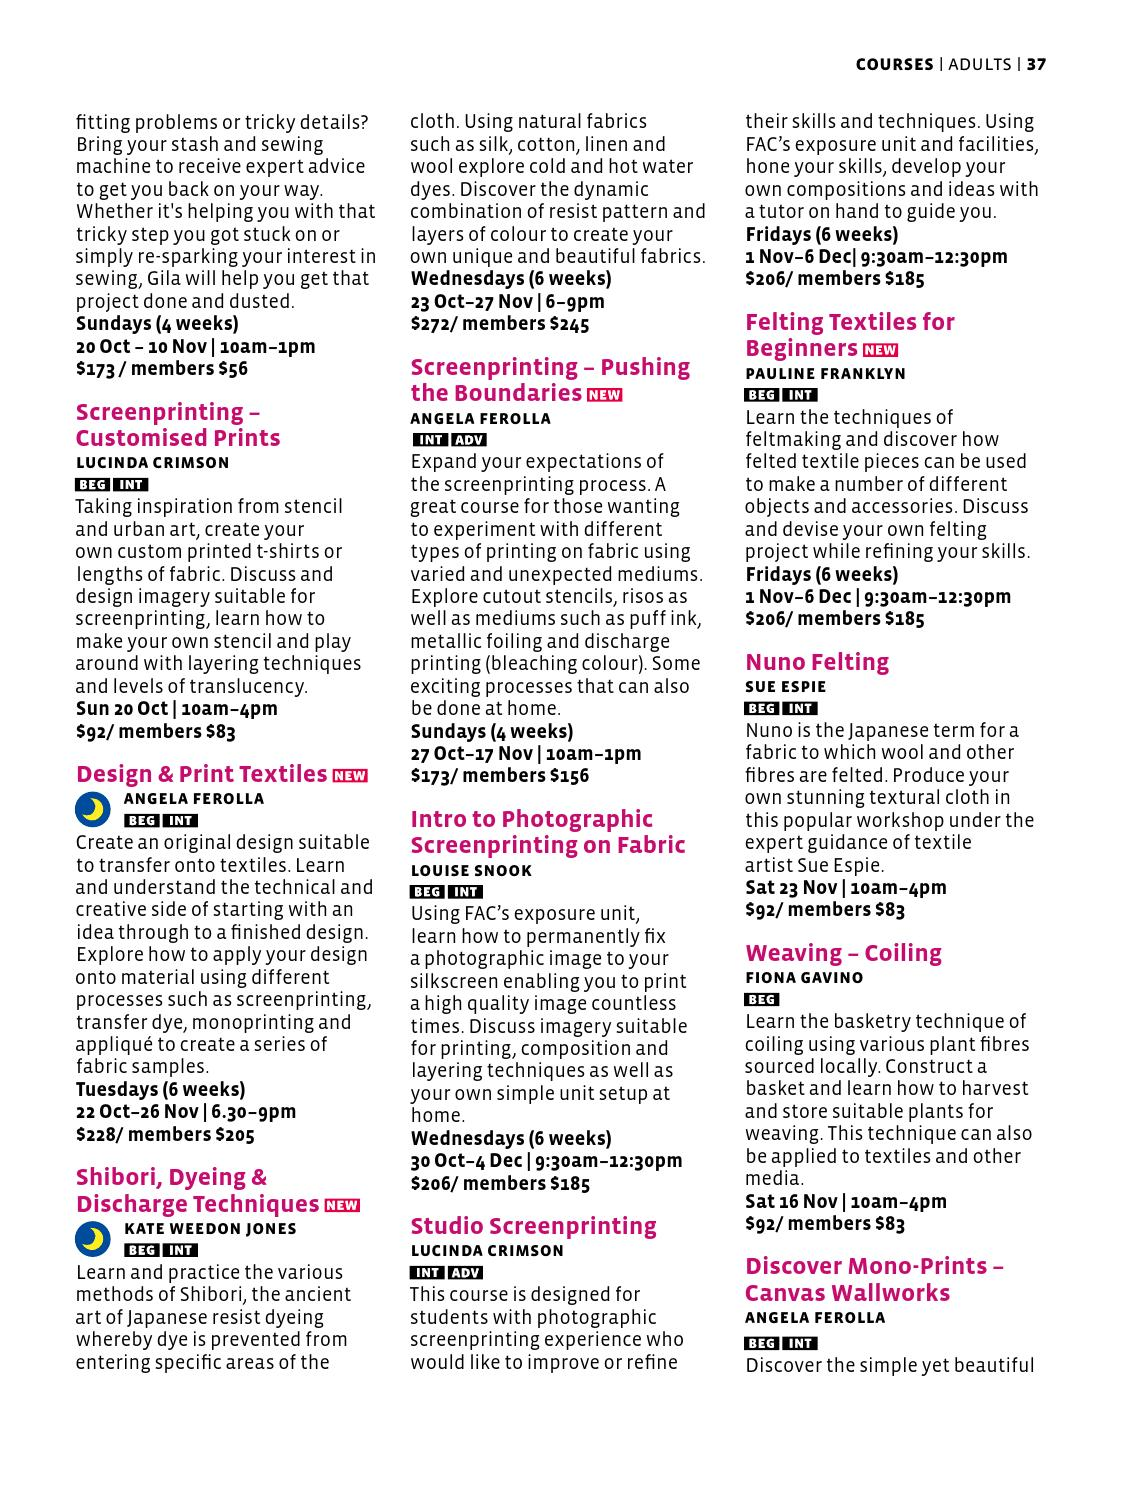 What's On at Fremantle Arts Centre October-December 2013 by